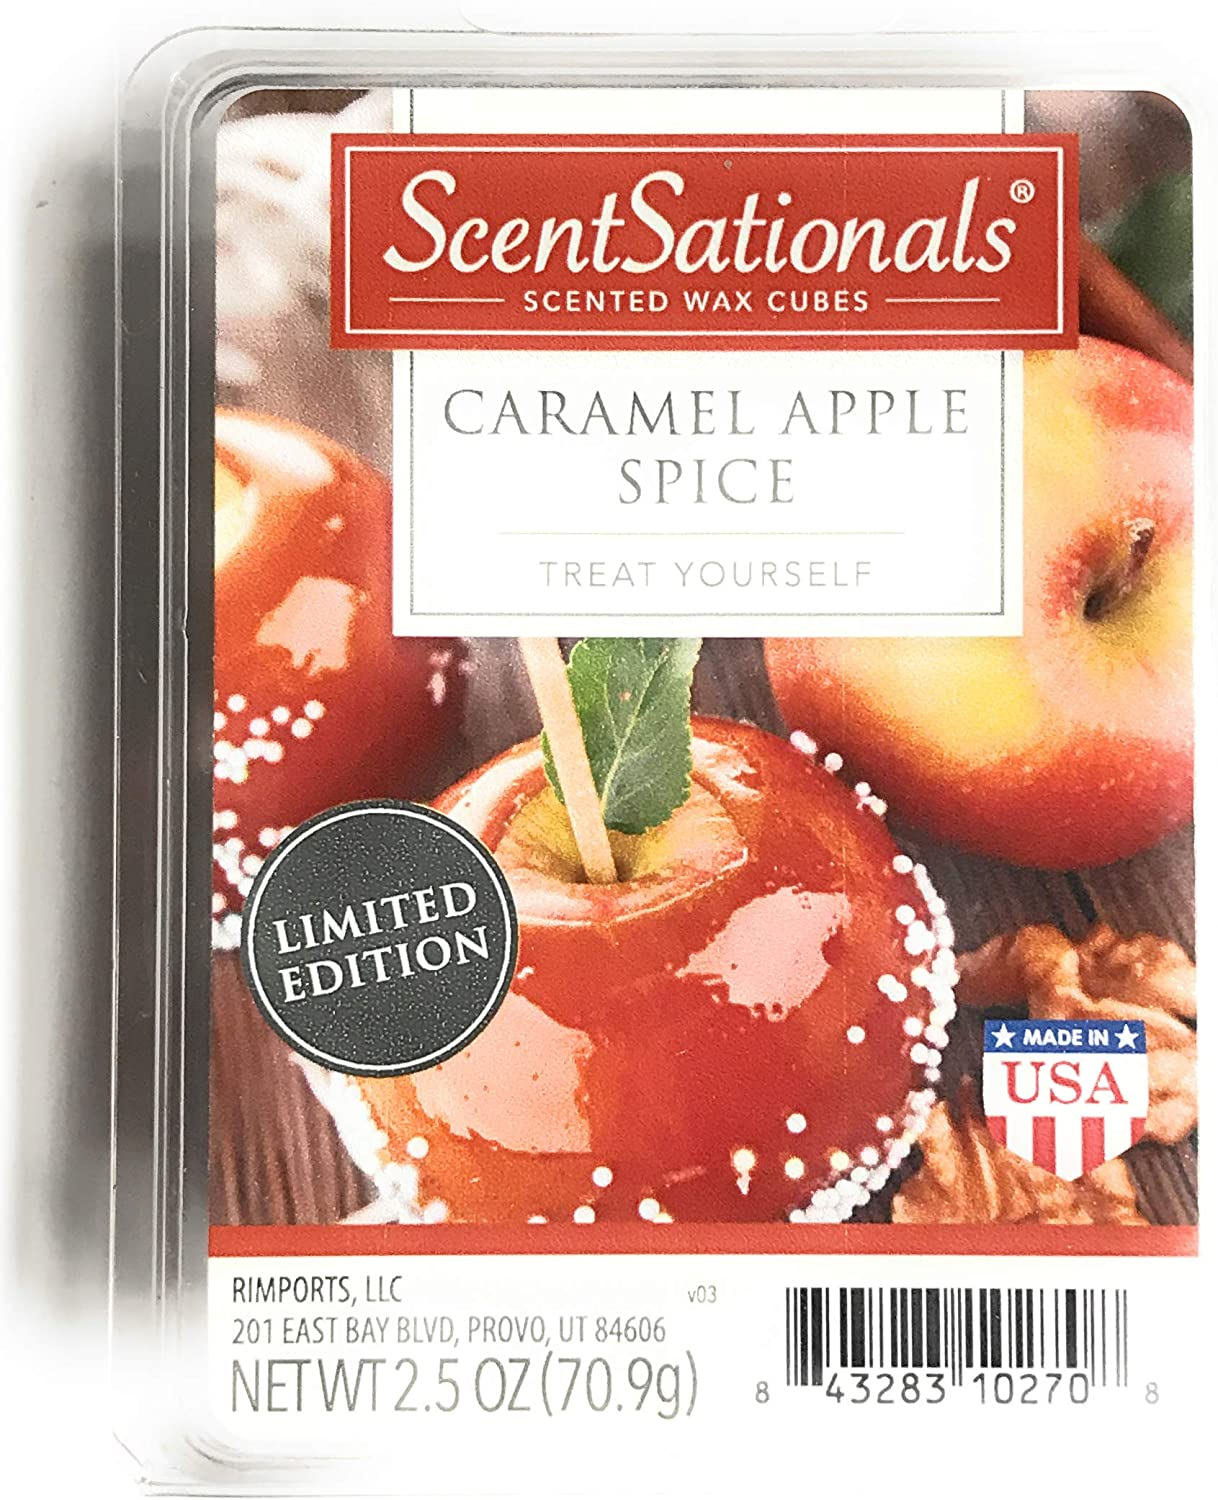 2018 Limited Edition ScentSationals Caramel Apple Spice Wax Cubes